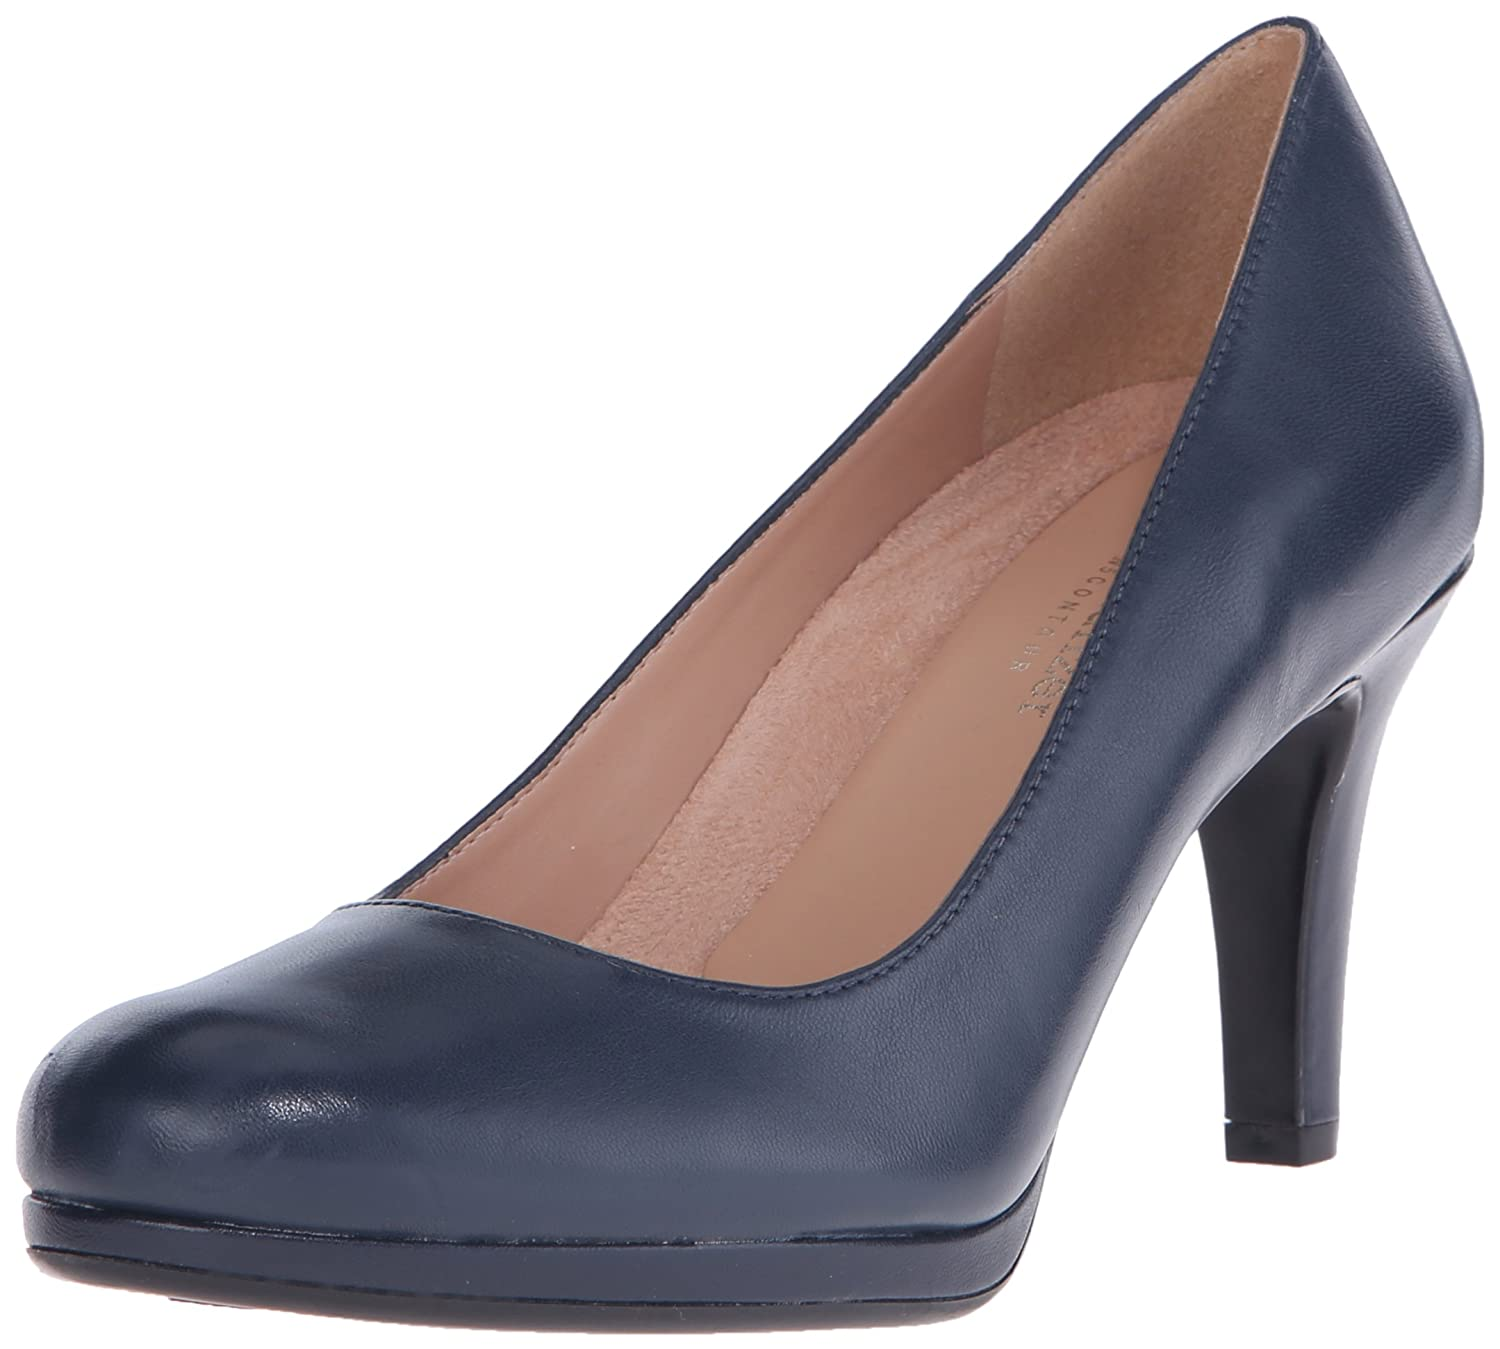 Naturalizer Women's Michelle Dress Pump B00RBVK2BI 9 B(M) US|Navy